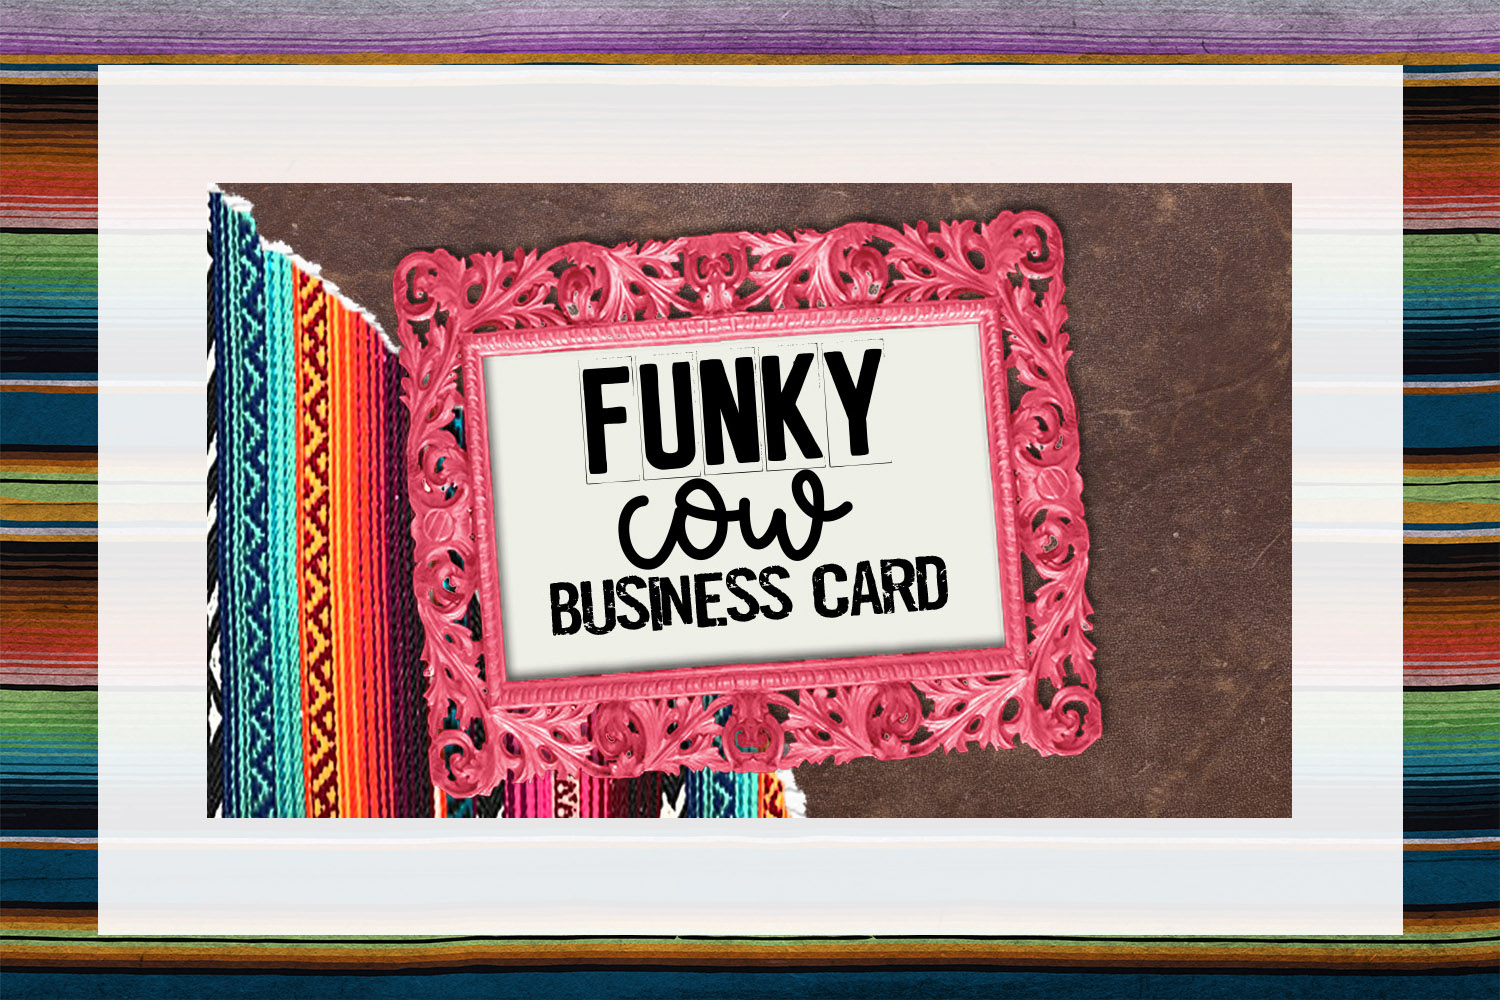 Funky Cow Business Card Digital Download example image 1